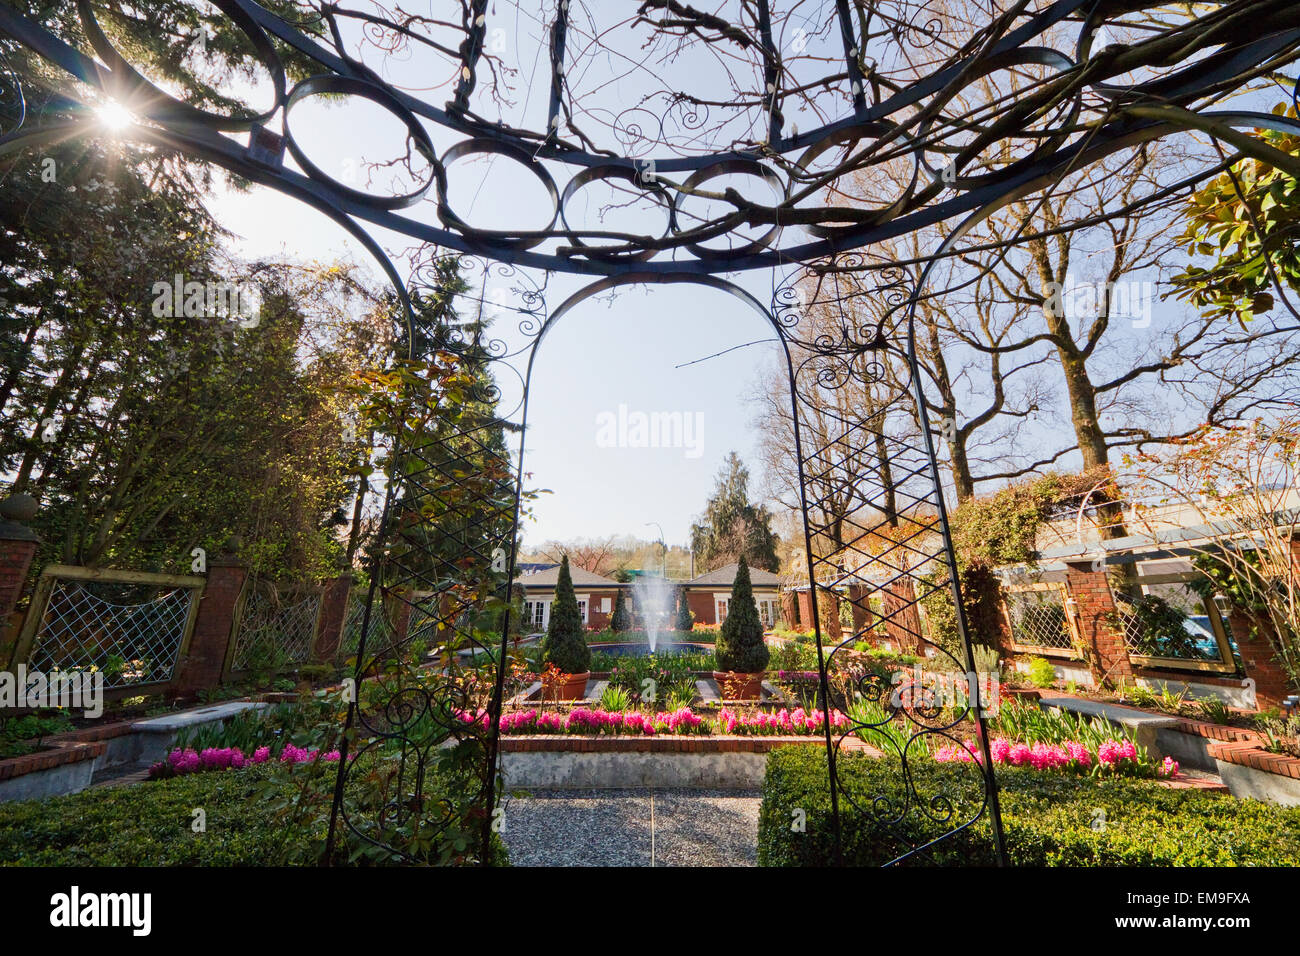 Gazebo In The Display Garden Of Park & Tilford Gardens, North Vancouver, British Columbia, Canada - Stock Image